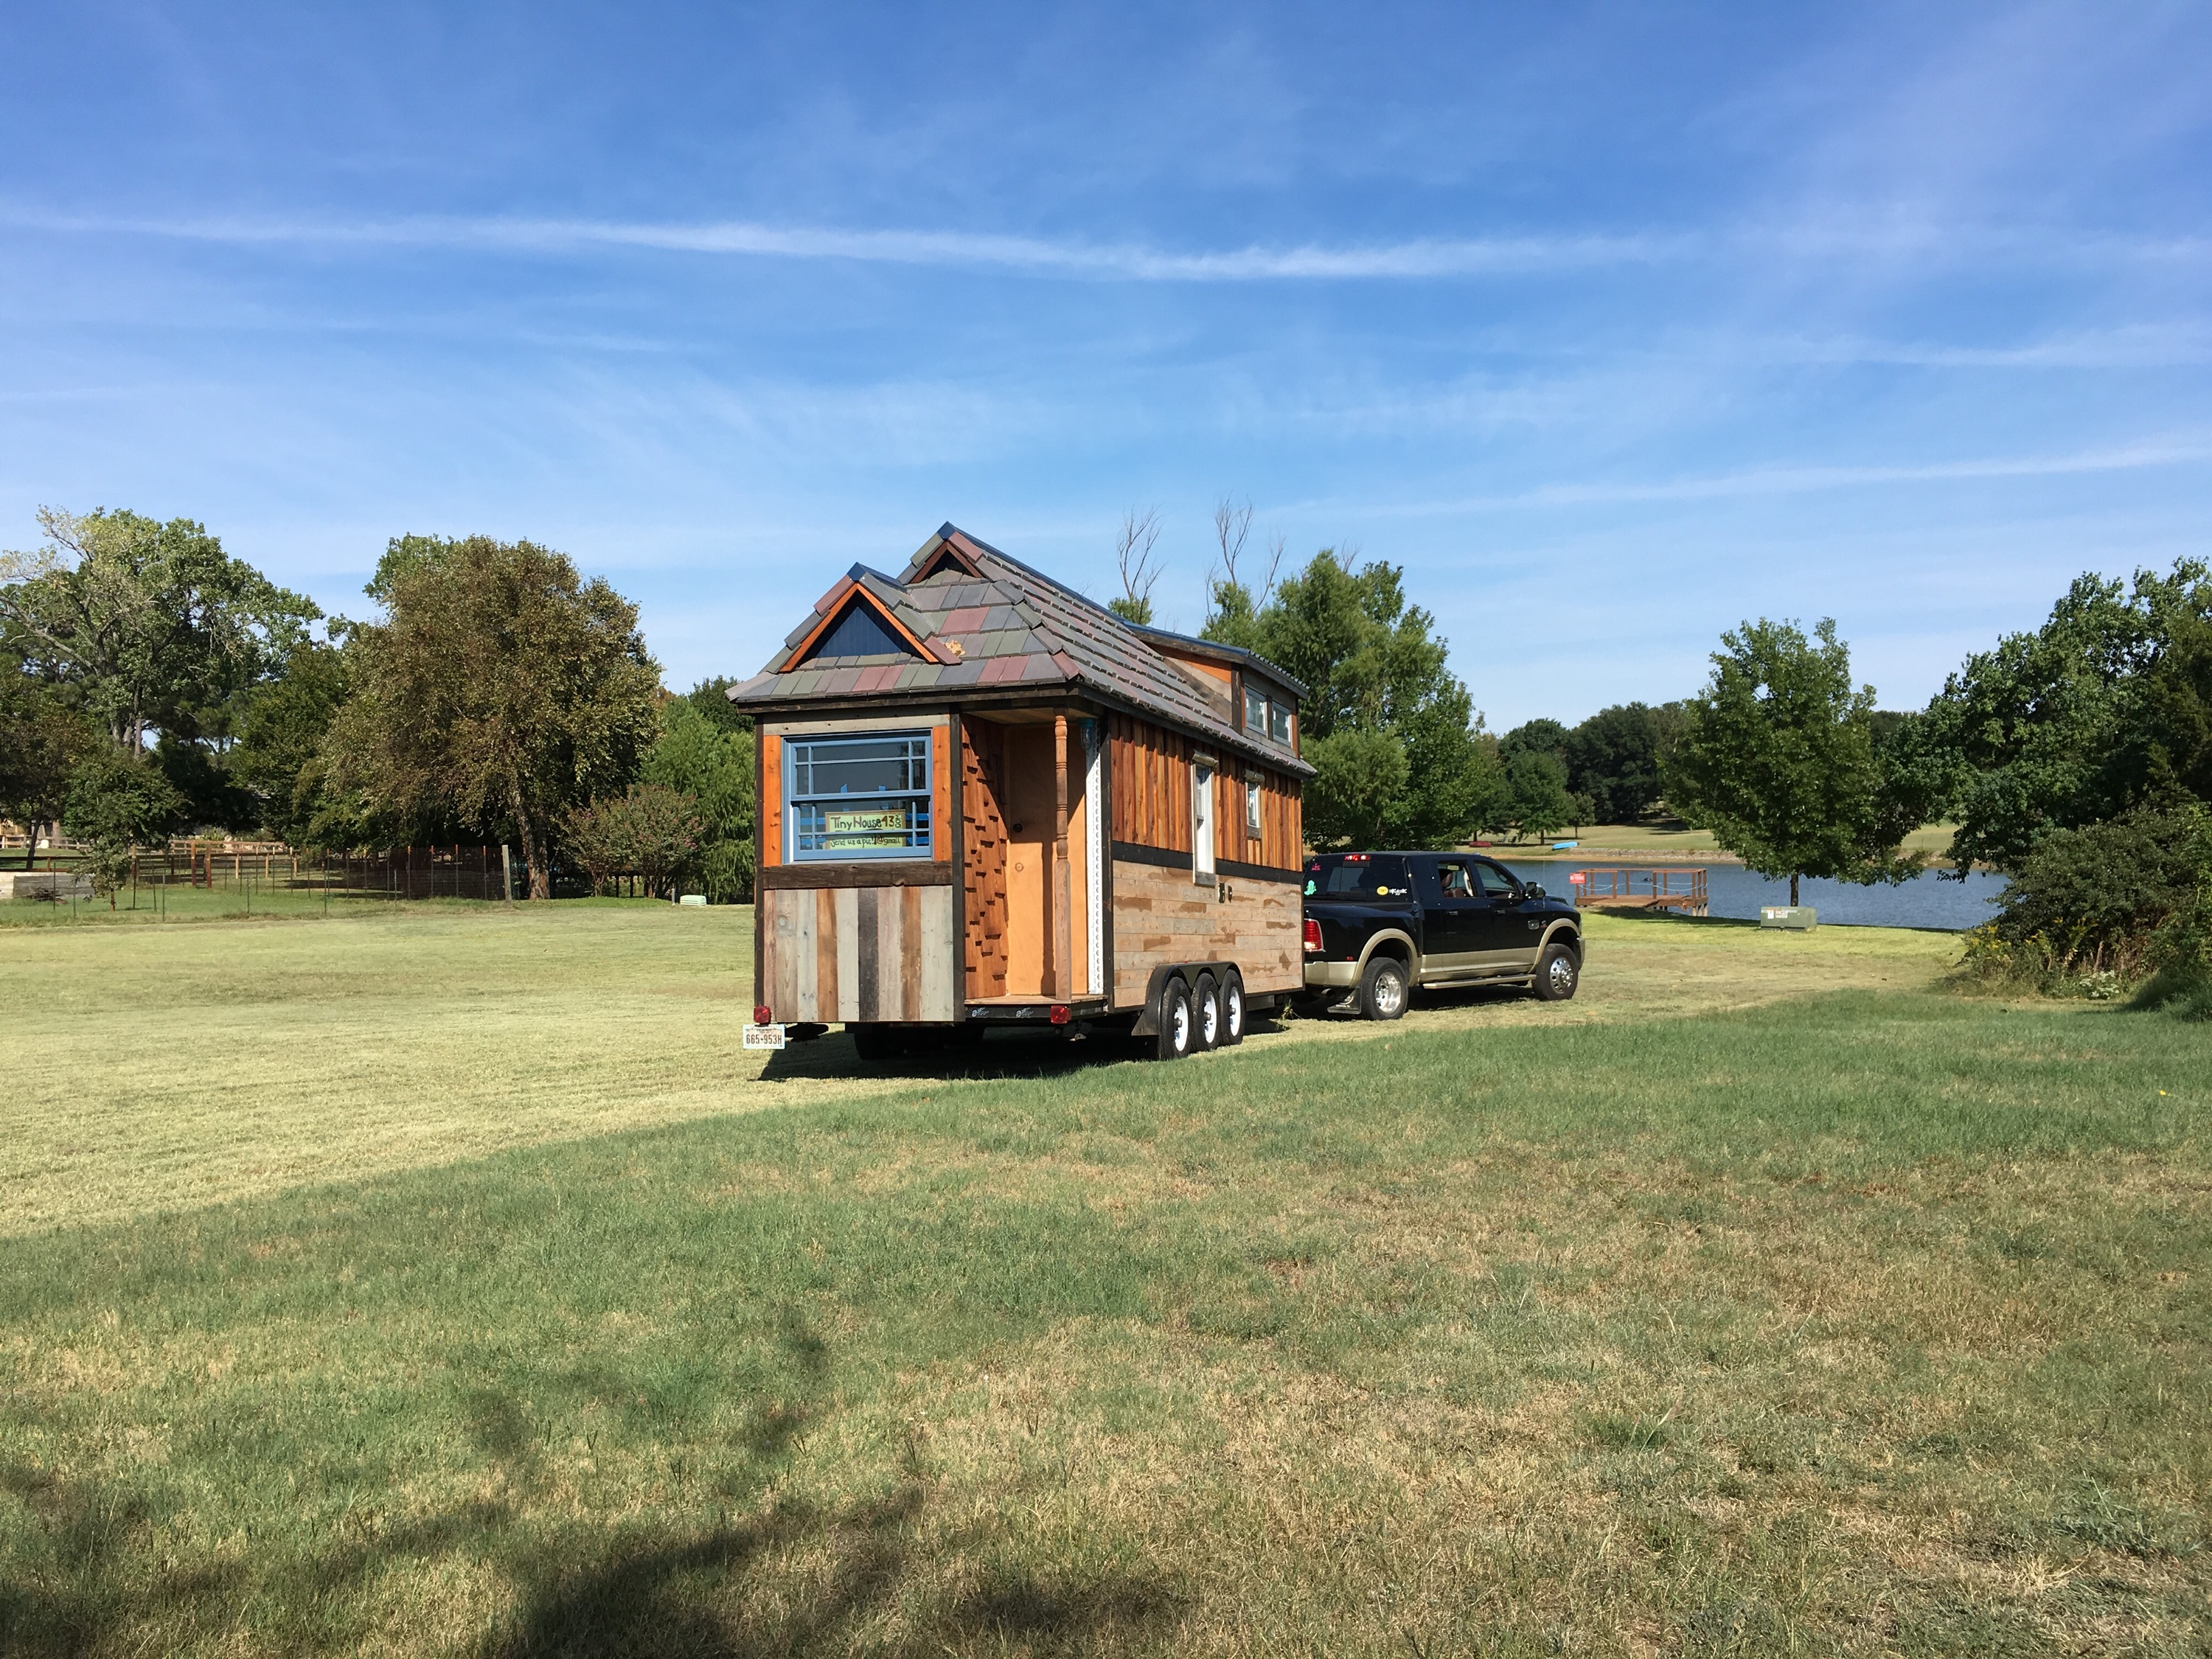 Tiny Travel Trailers Most In demand Home Design